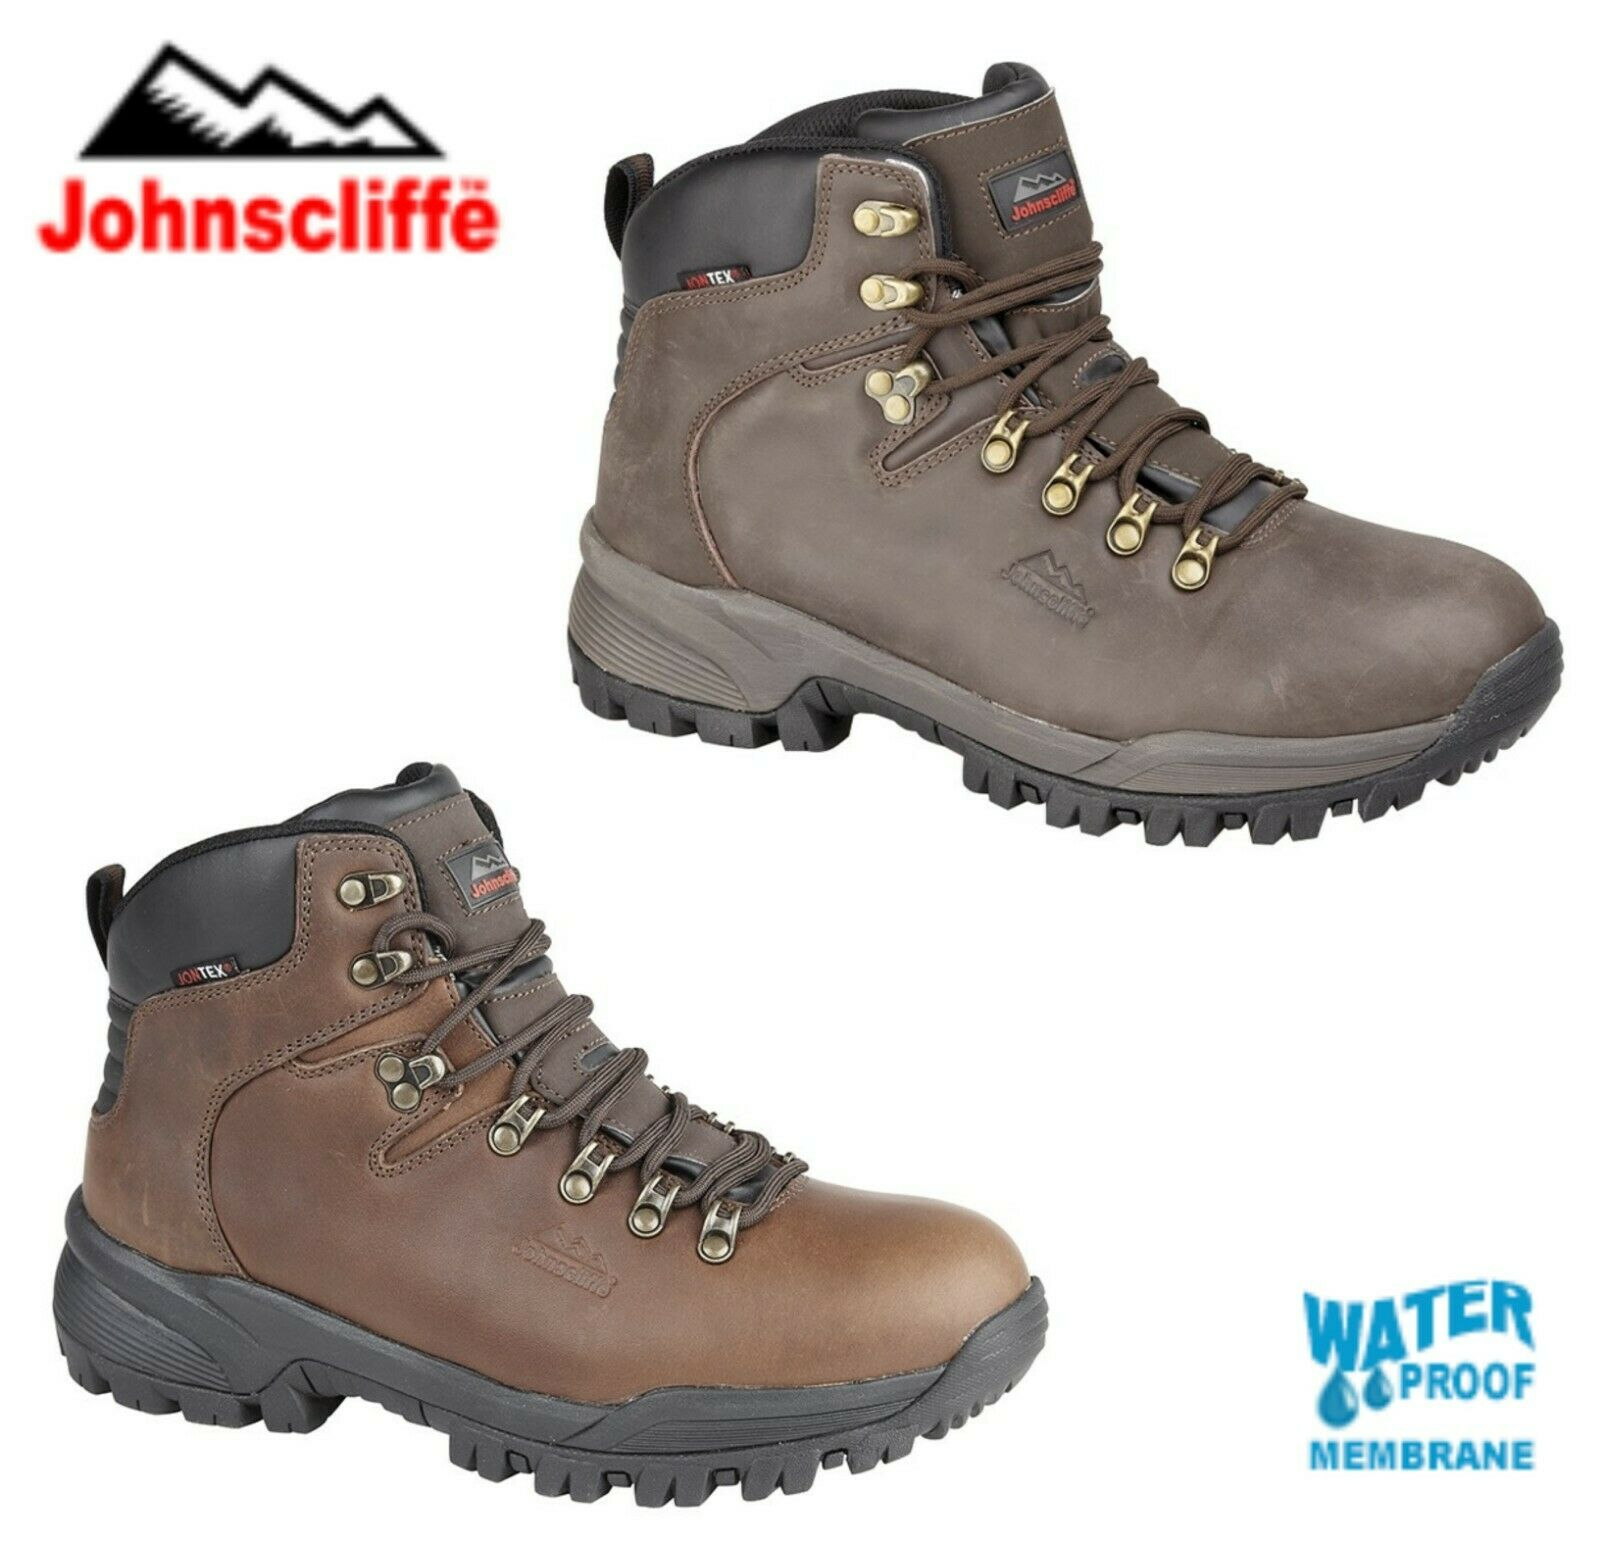 JOHNSCLIFFE Brown Leather Waterproof Hiking Boots - Size 4 5 6 7 8 9 10 11 12 13